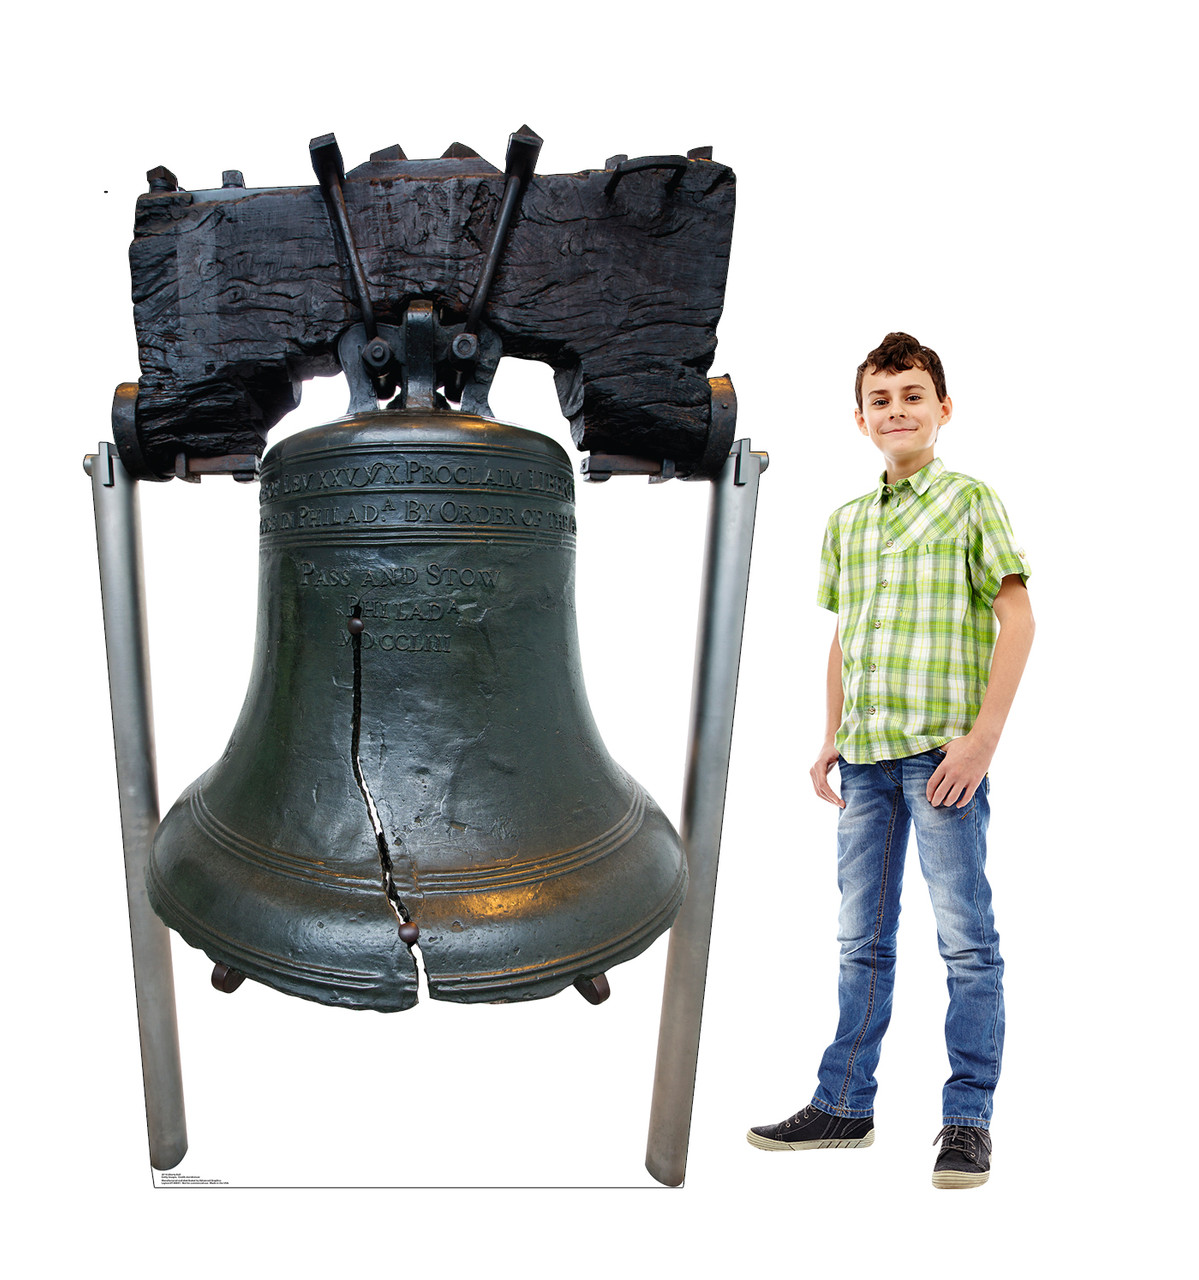 Life-size cardboard standee of the Liberty Bell with model.